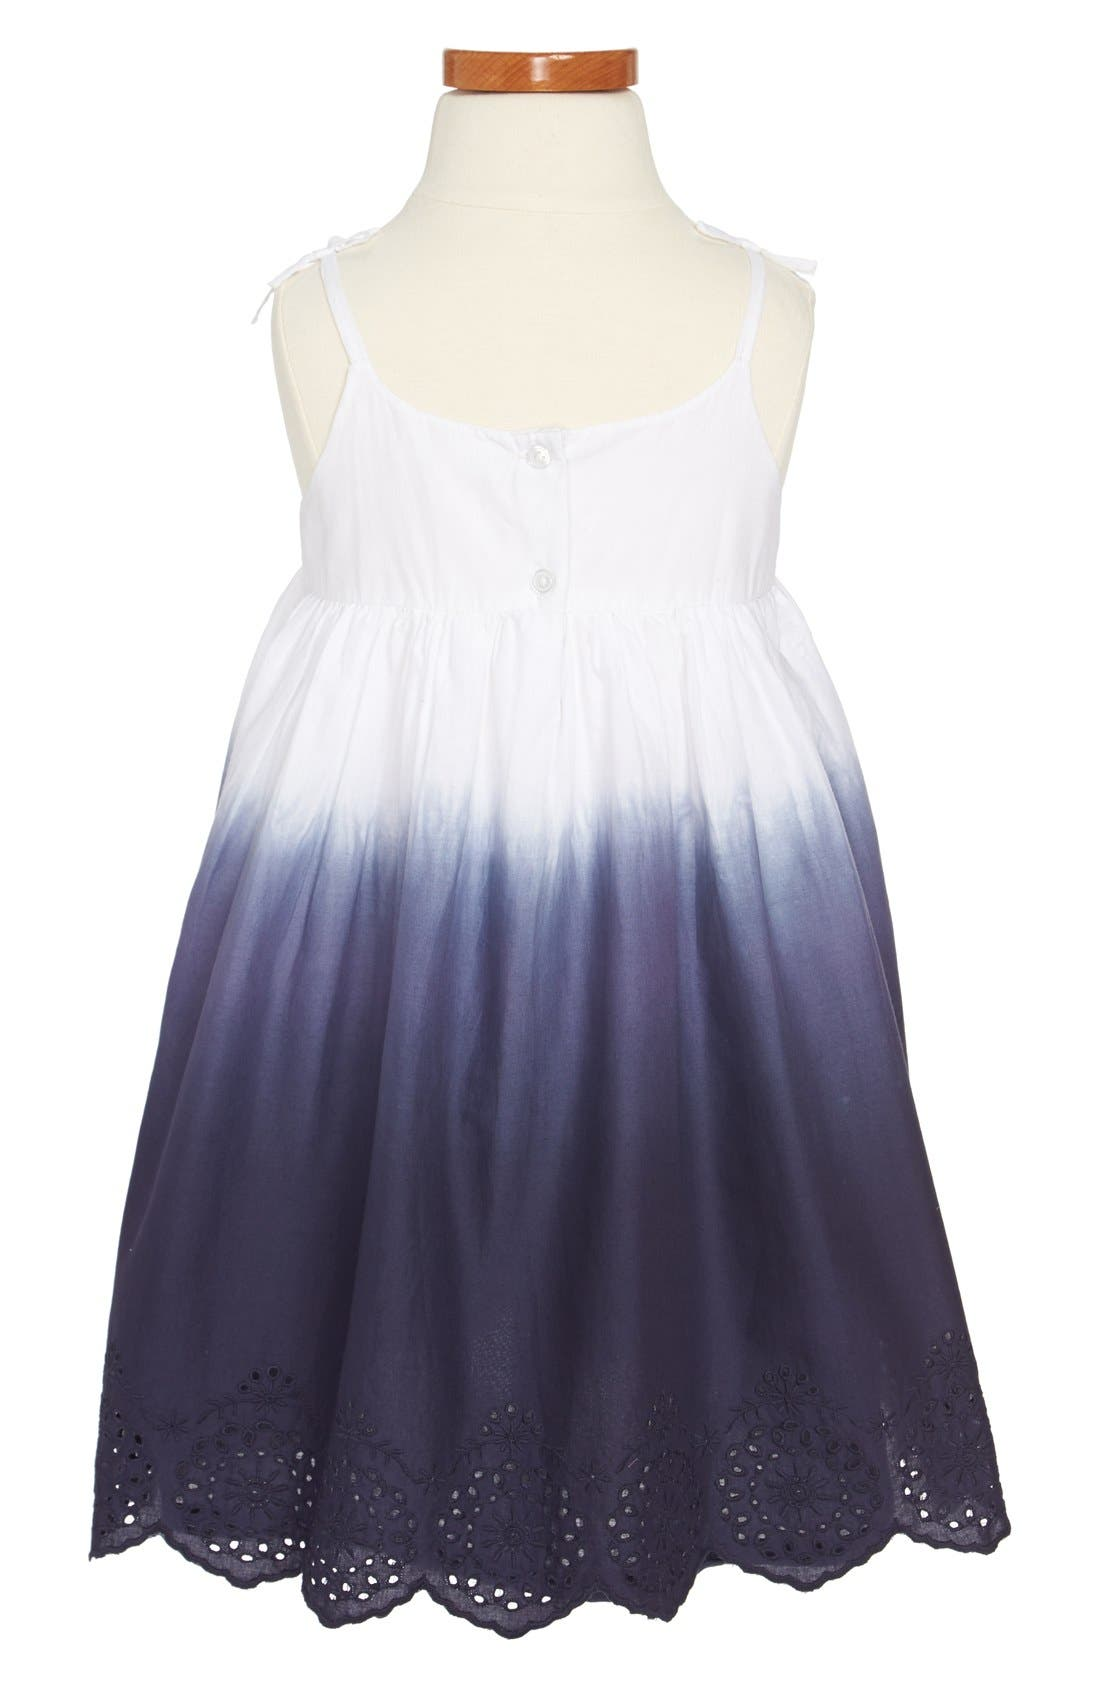 Alternate Image 2  - Tucker + Tate 'Maya' Sleeveless Dress (Toddler Girls, Little Girls & Big Girls)